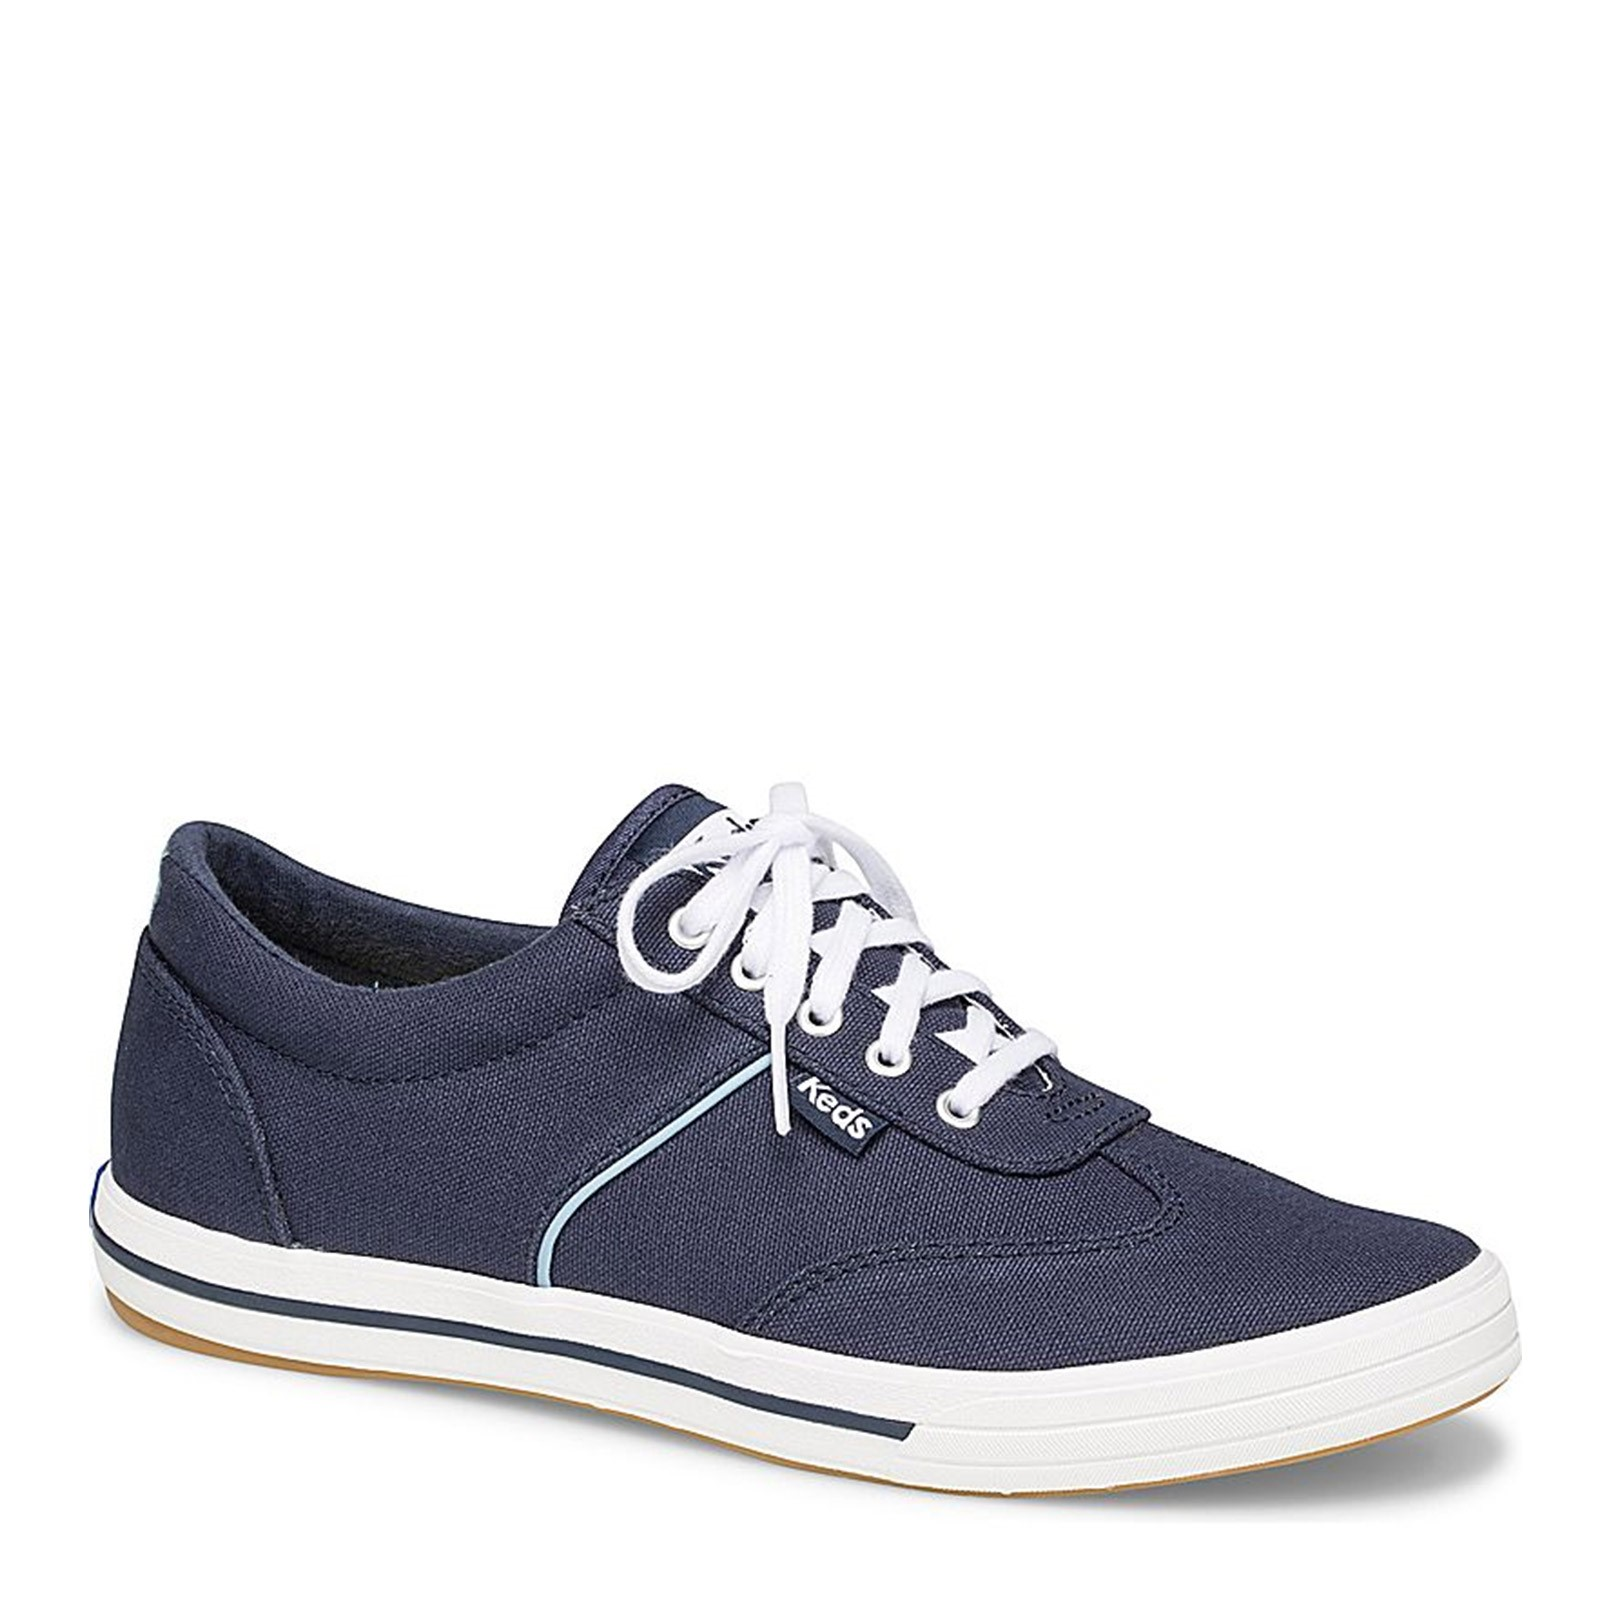 Women's Keds, Courty Core Lace up Sneakers